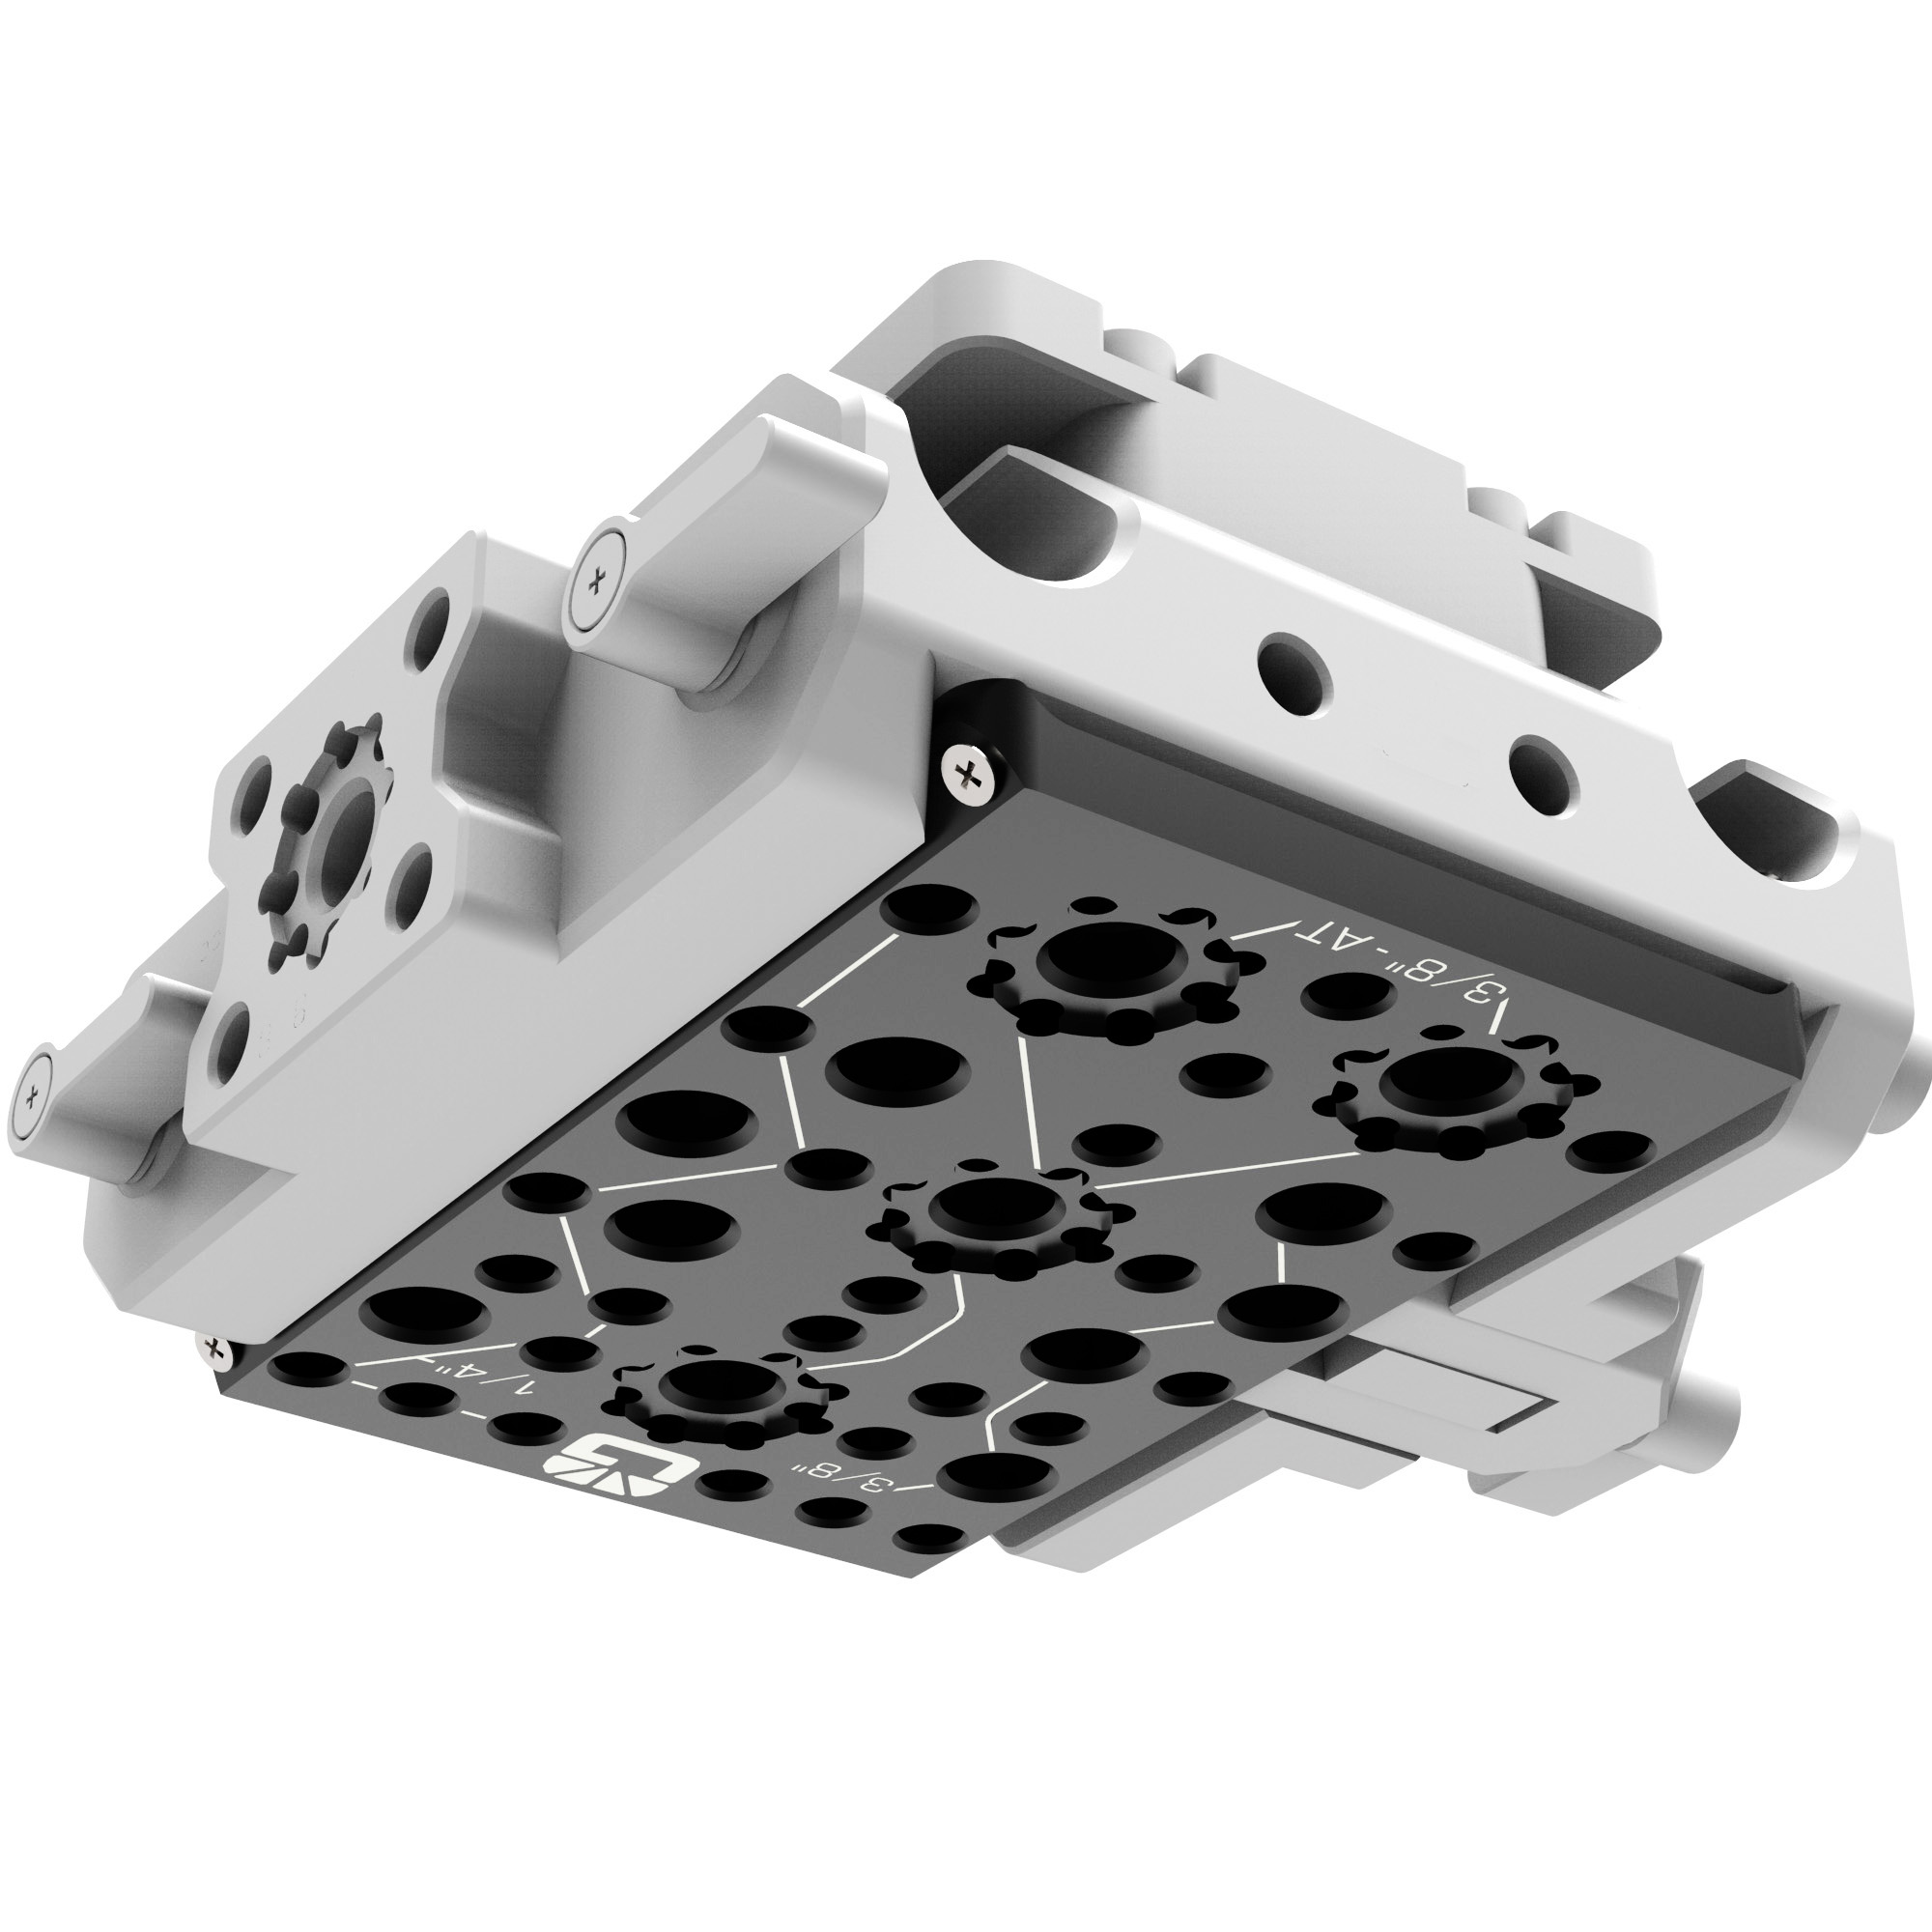 B4003 1008 Left Field Dovetail Plate 8